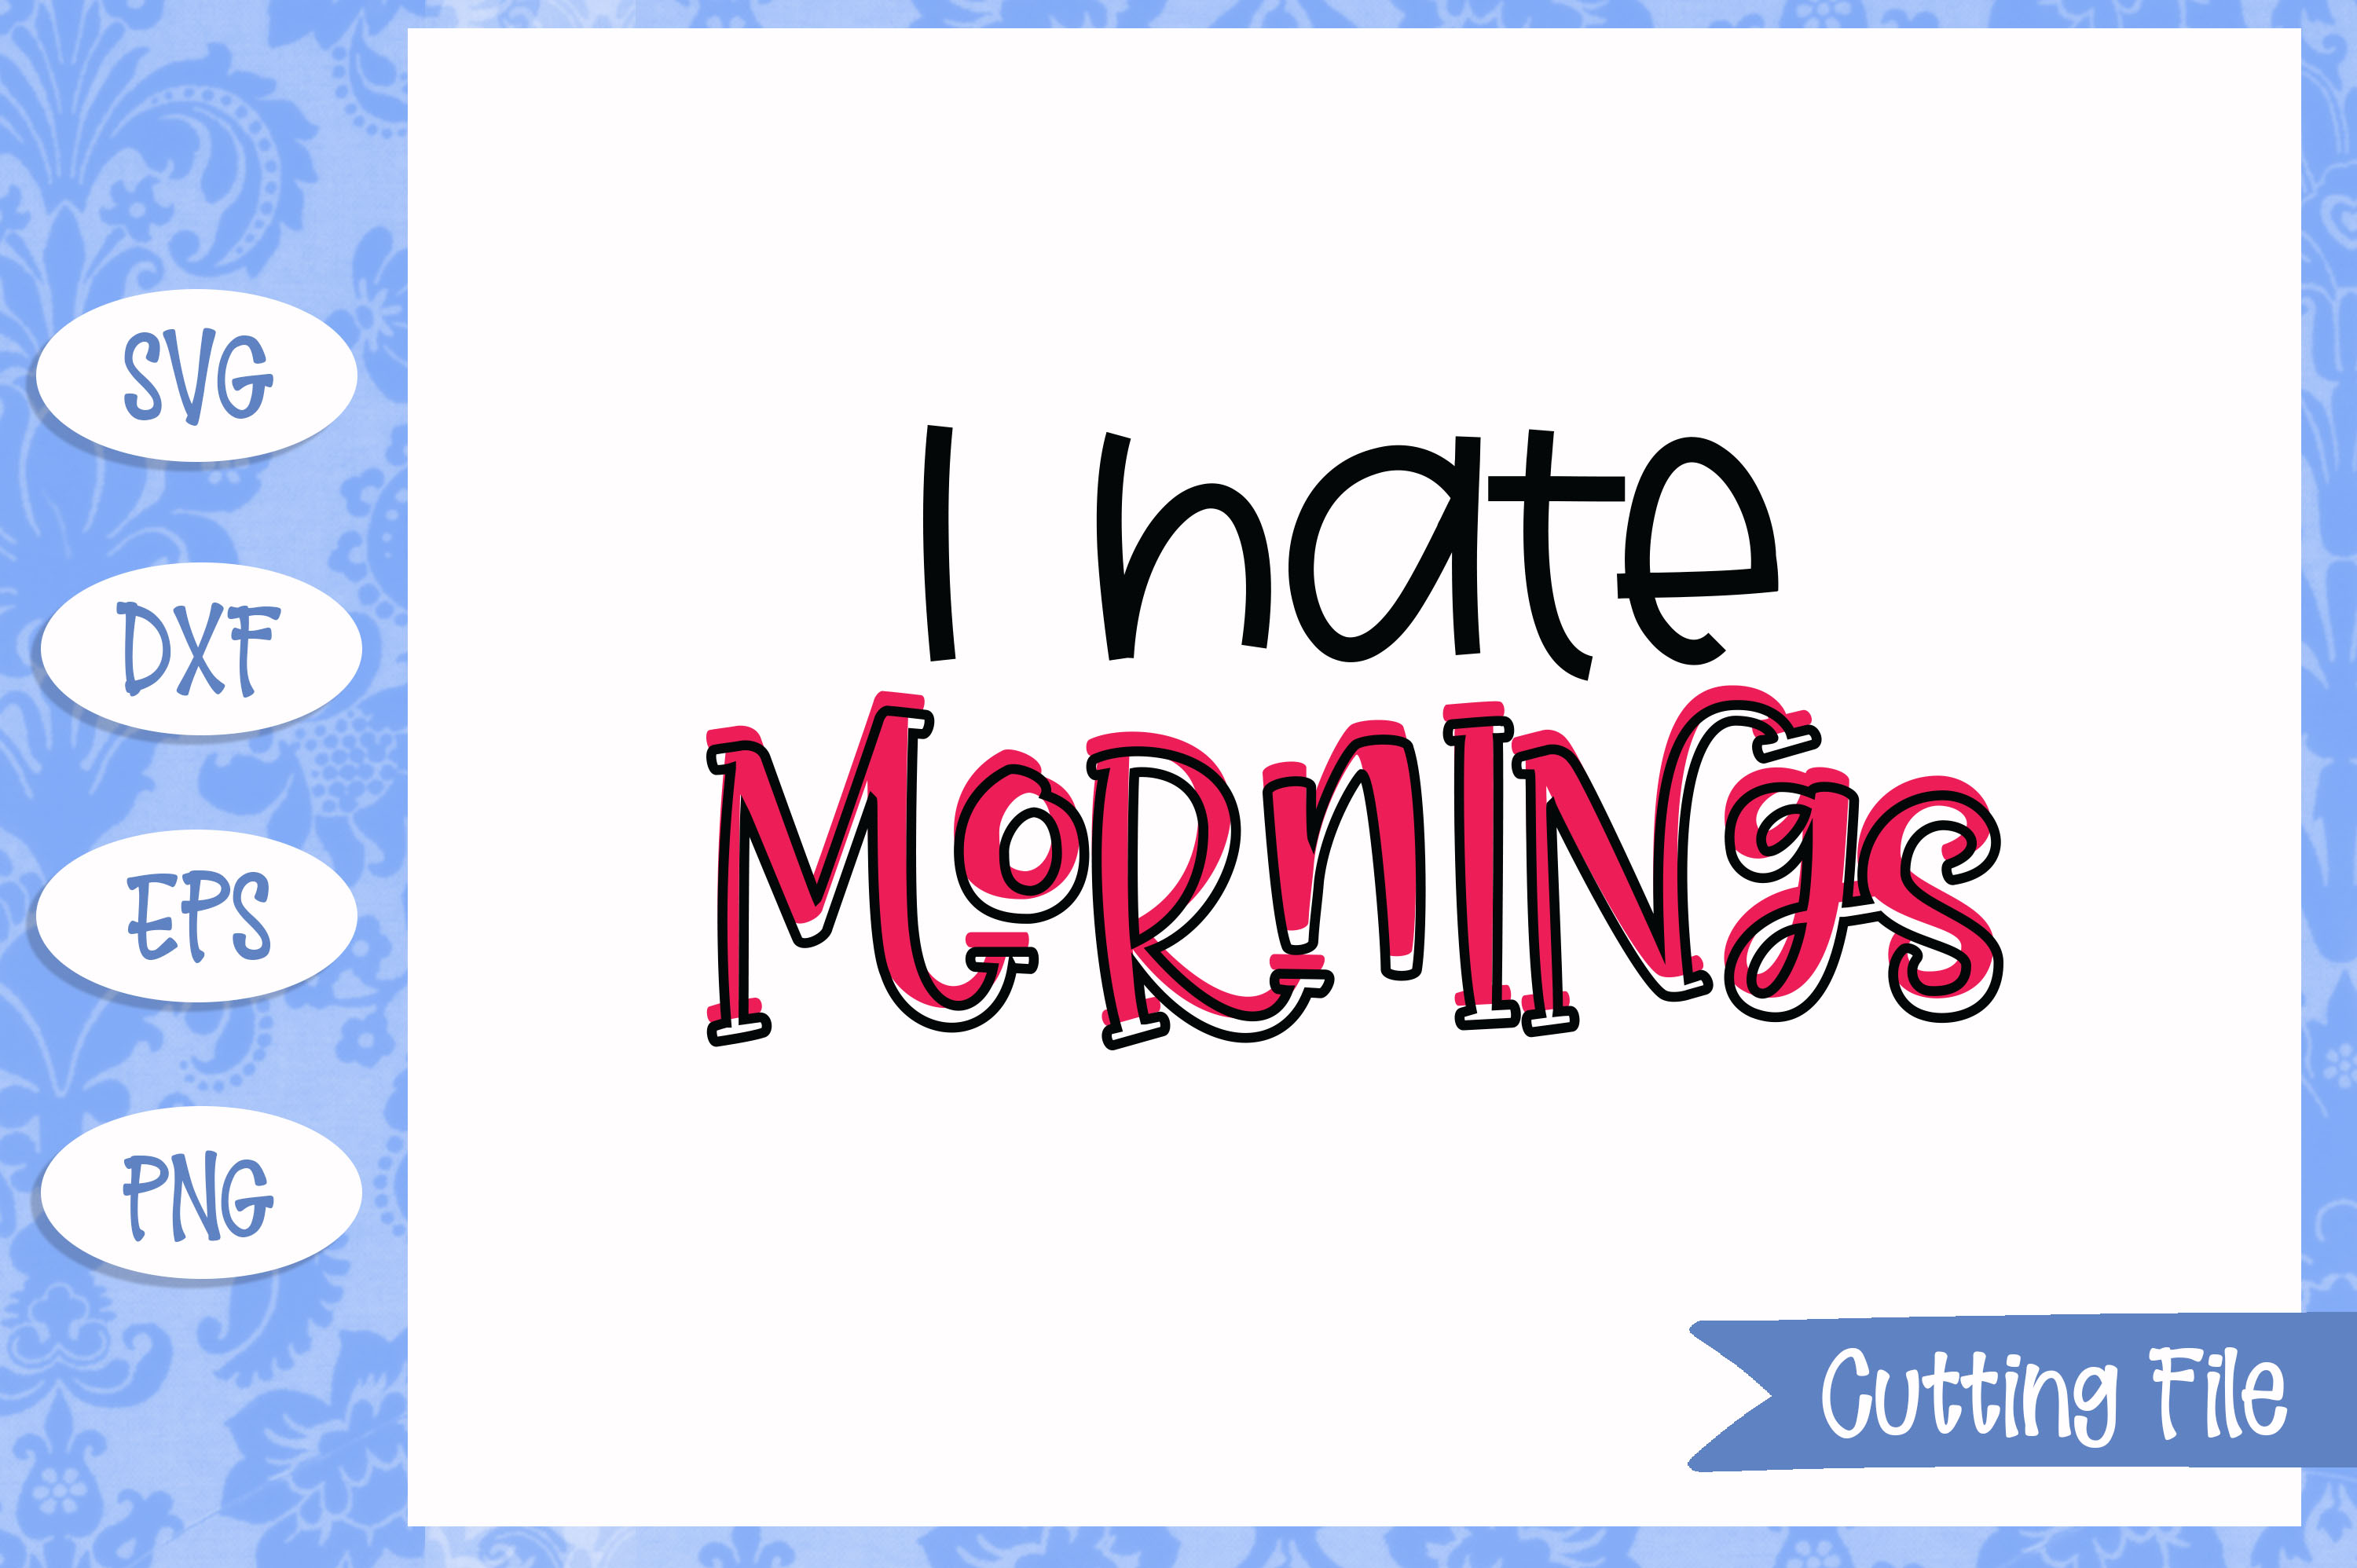 I hate mornings SVG File example image 1